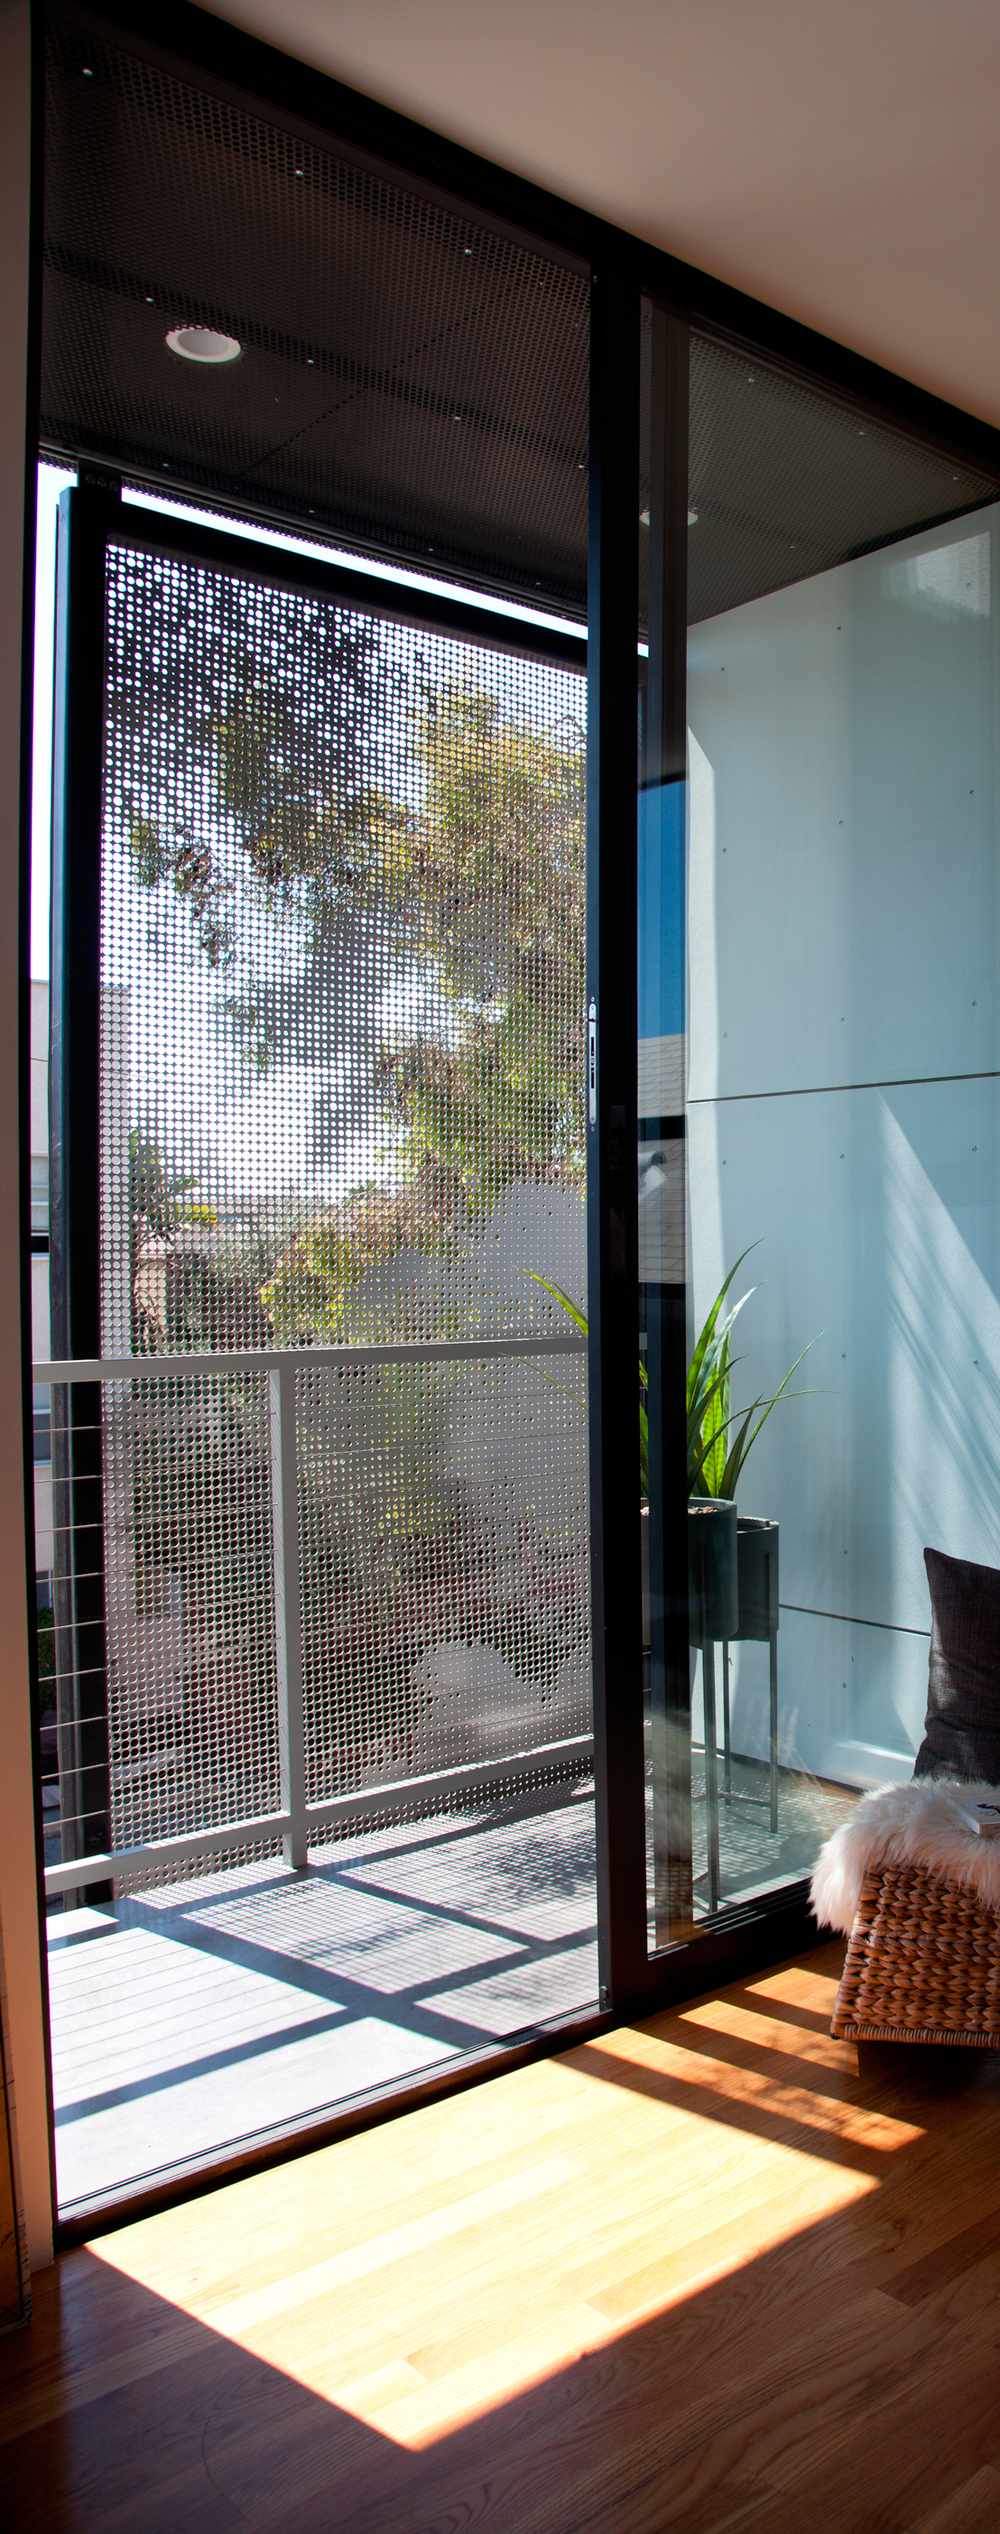 43/45 Brooks Ave   ., Venice, CA, collaboration with Brooks + Scarpa Architects